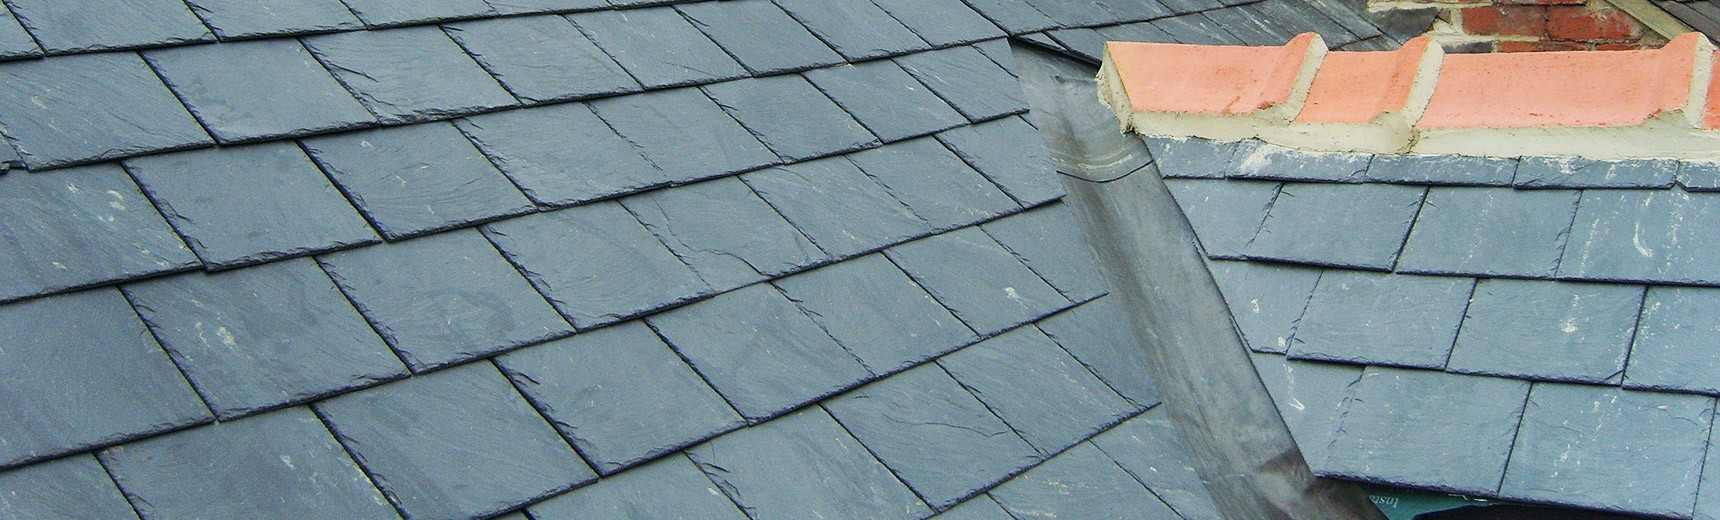 General roofing